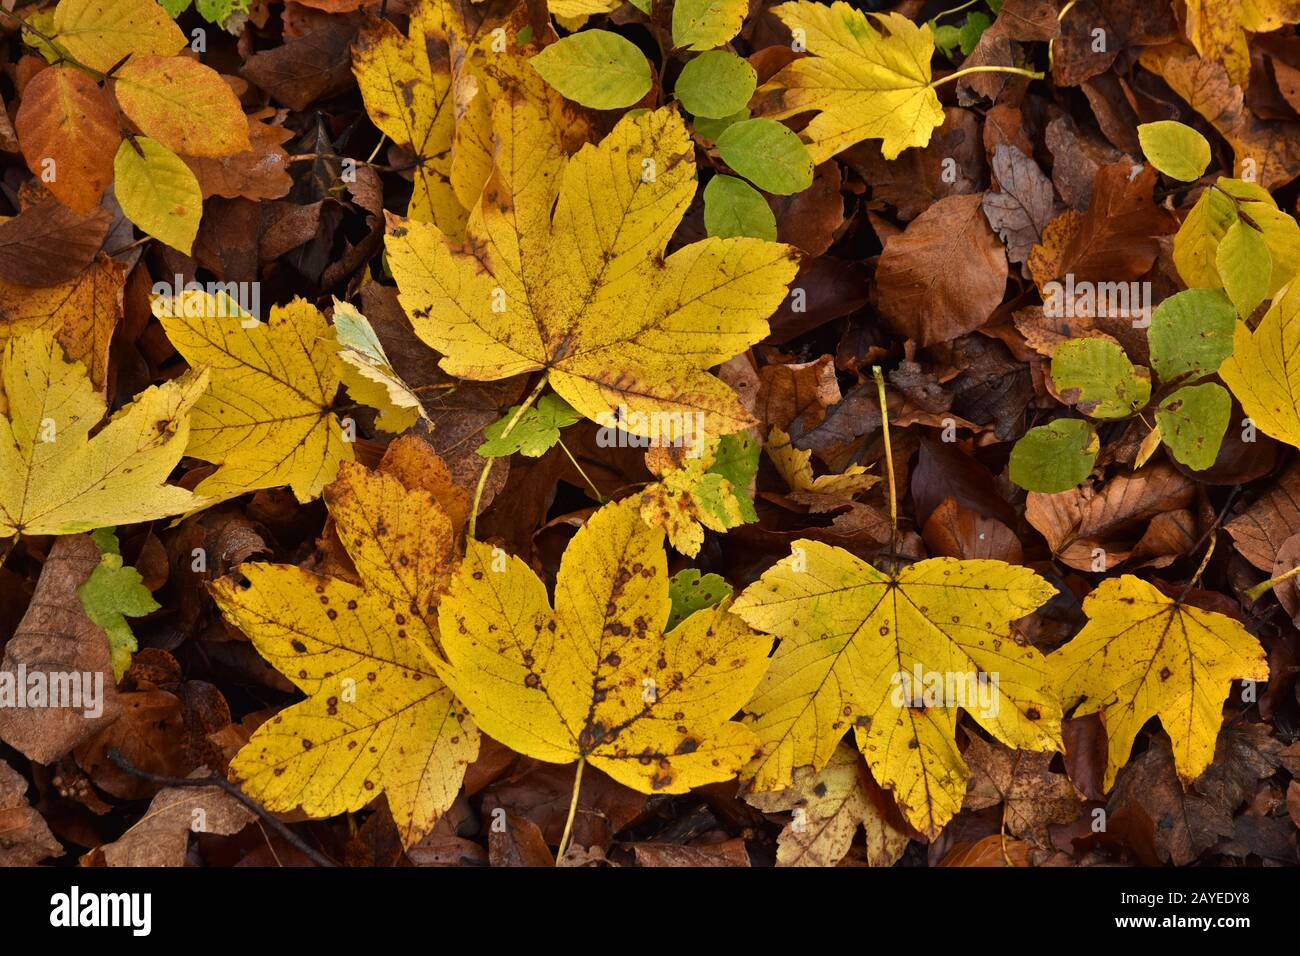 sycamore maple, yellow leaves Stock Photo